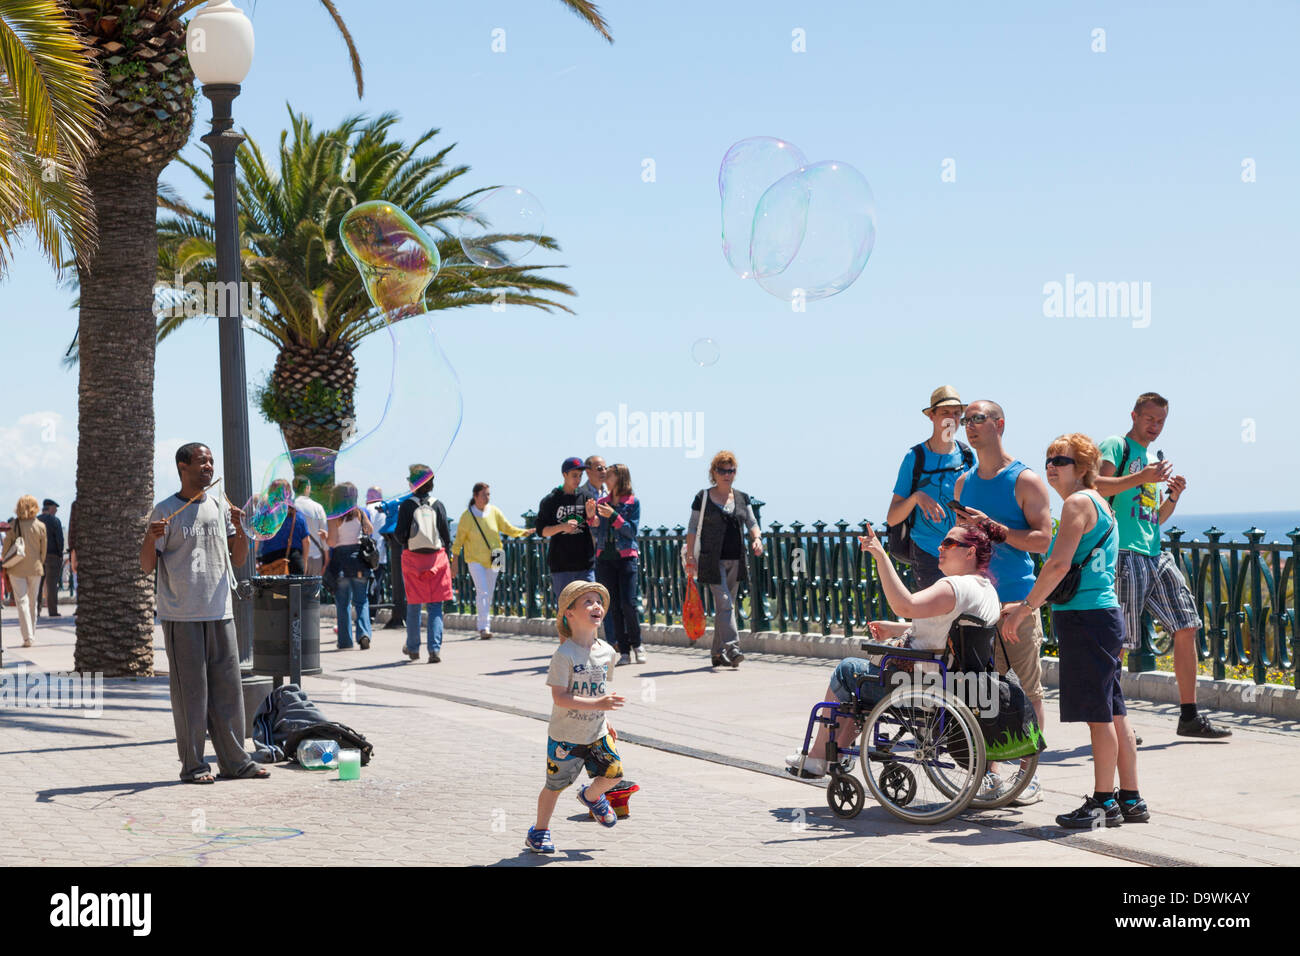 Tourists watching a soap bubble busker at Tarragona. - Stock Image